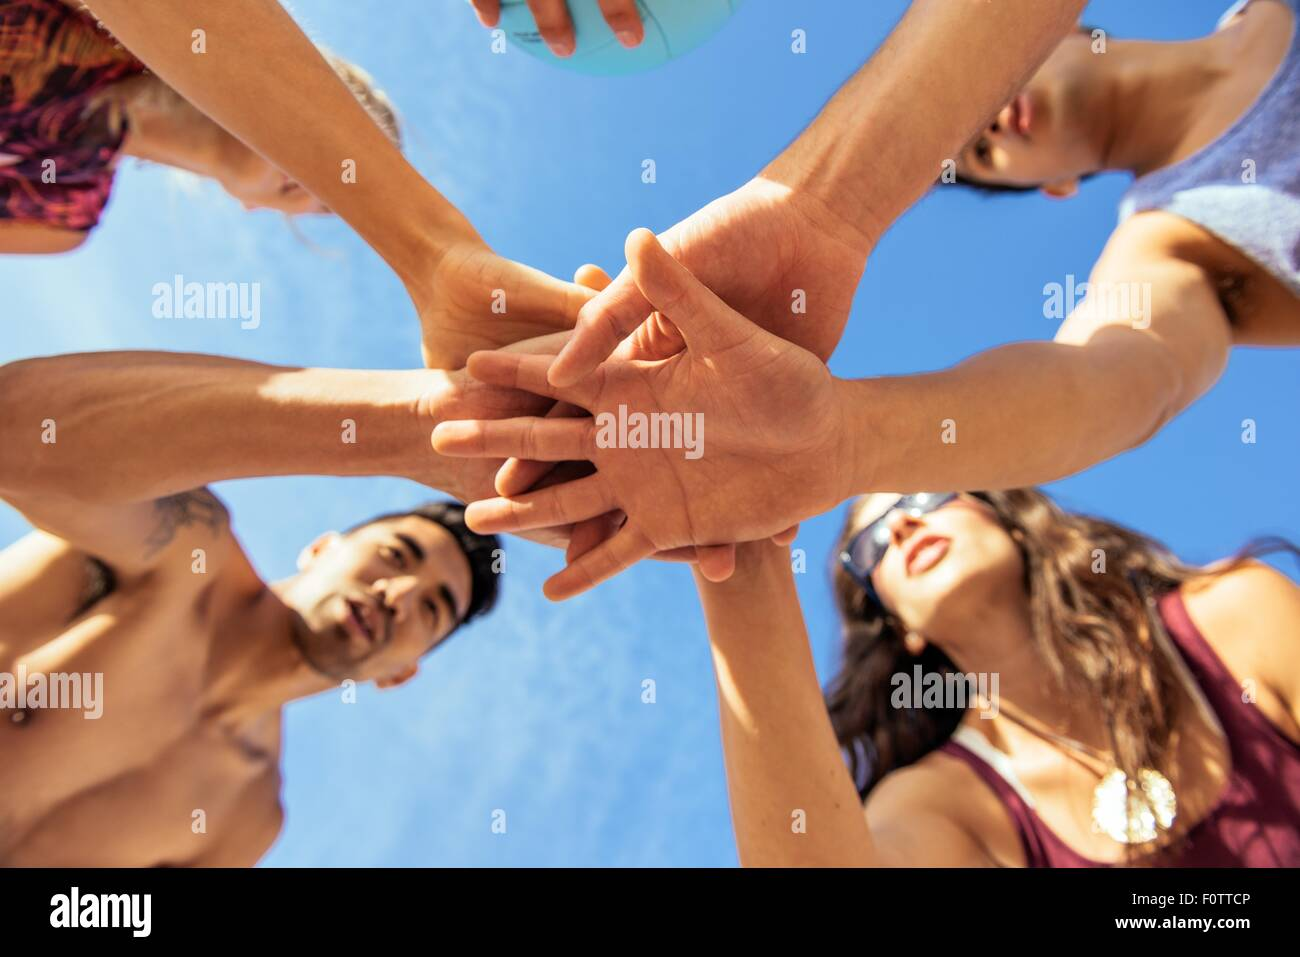 Group of friends joining hands on beach, low angle view - Stock Image